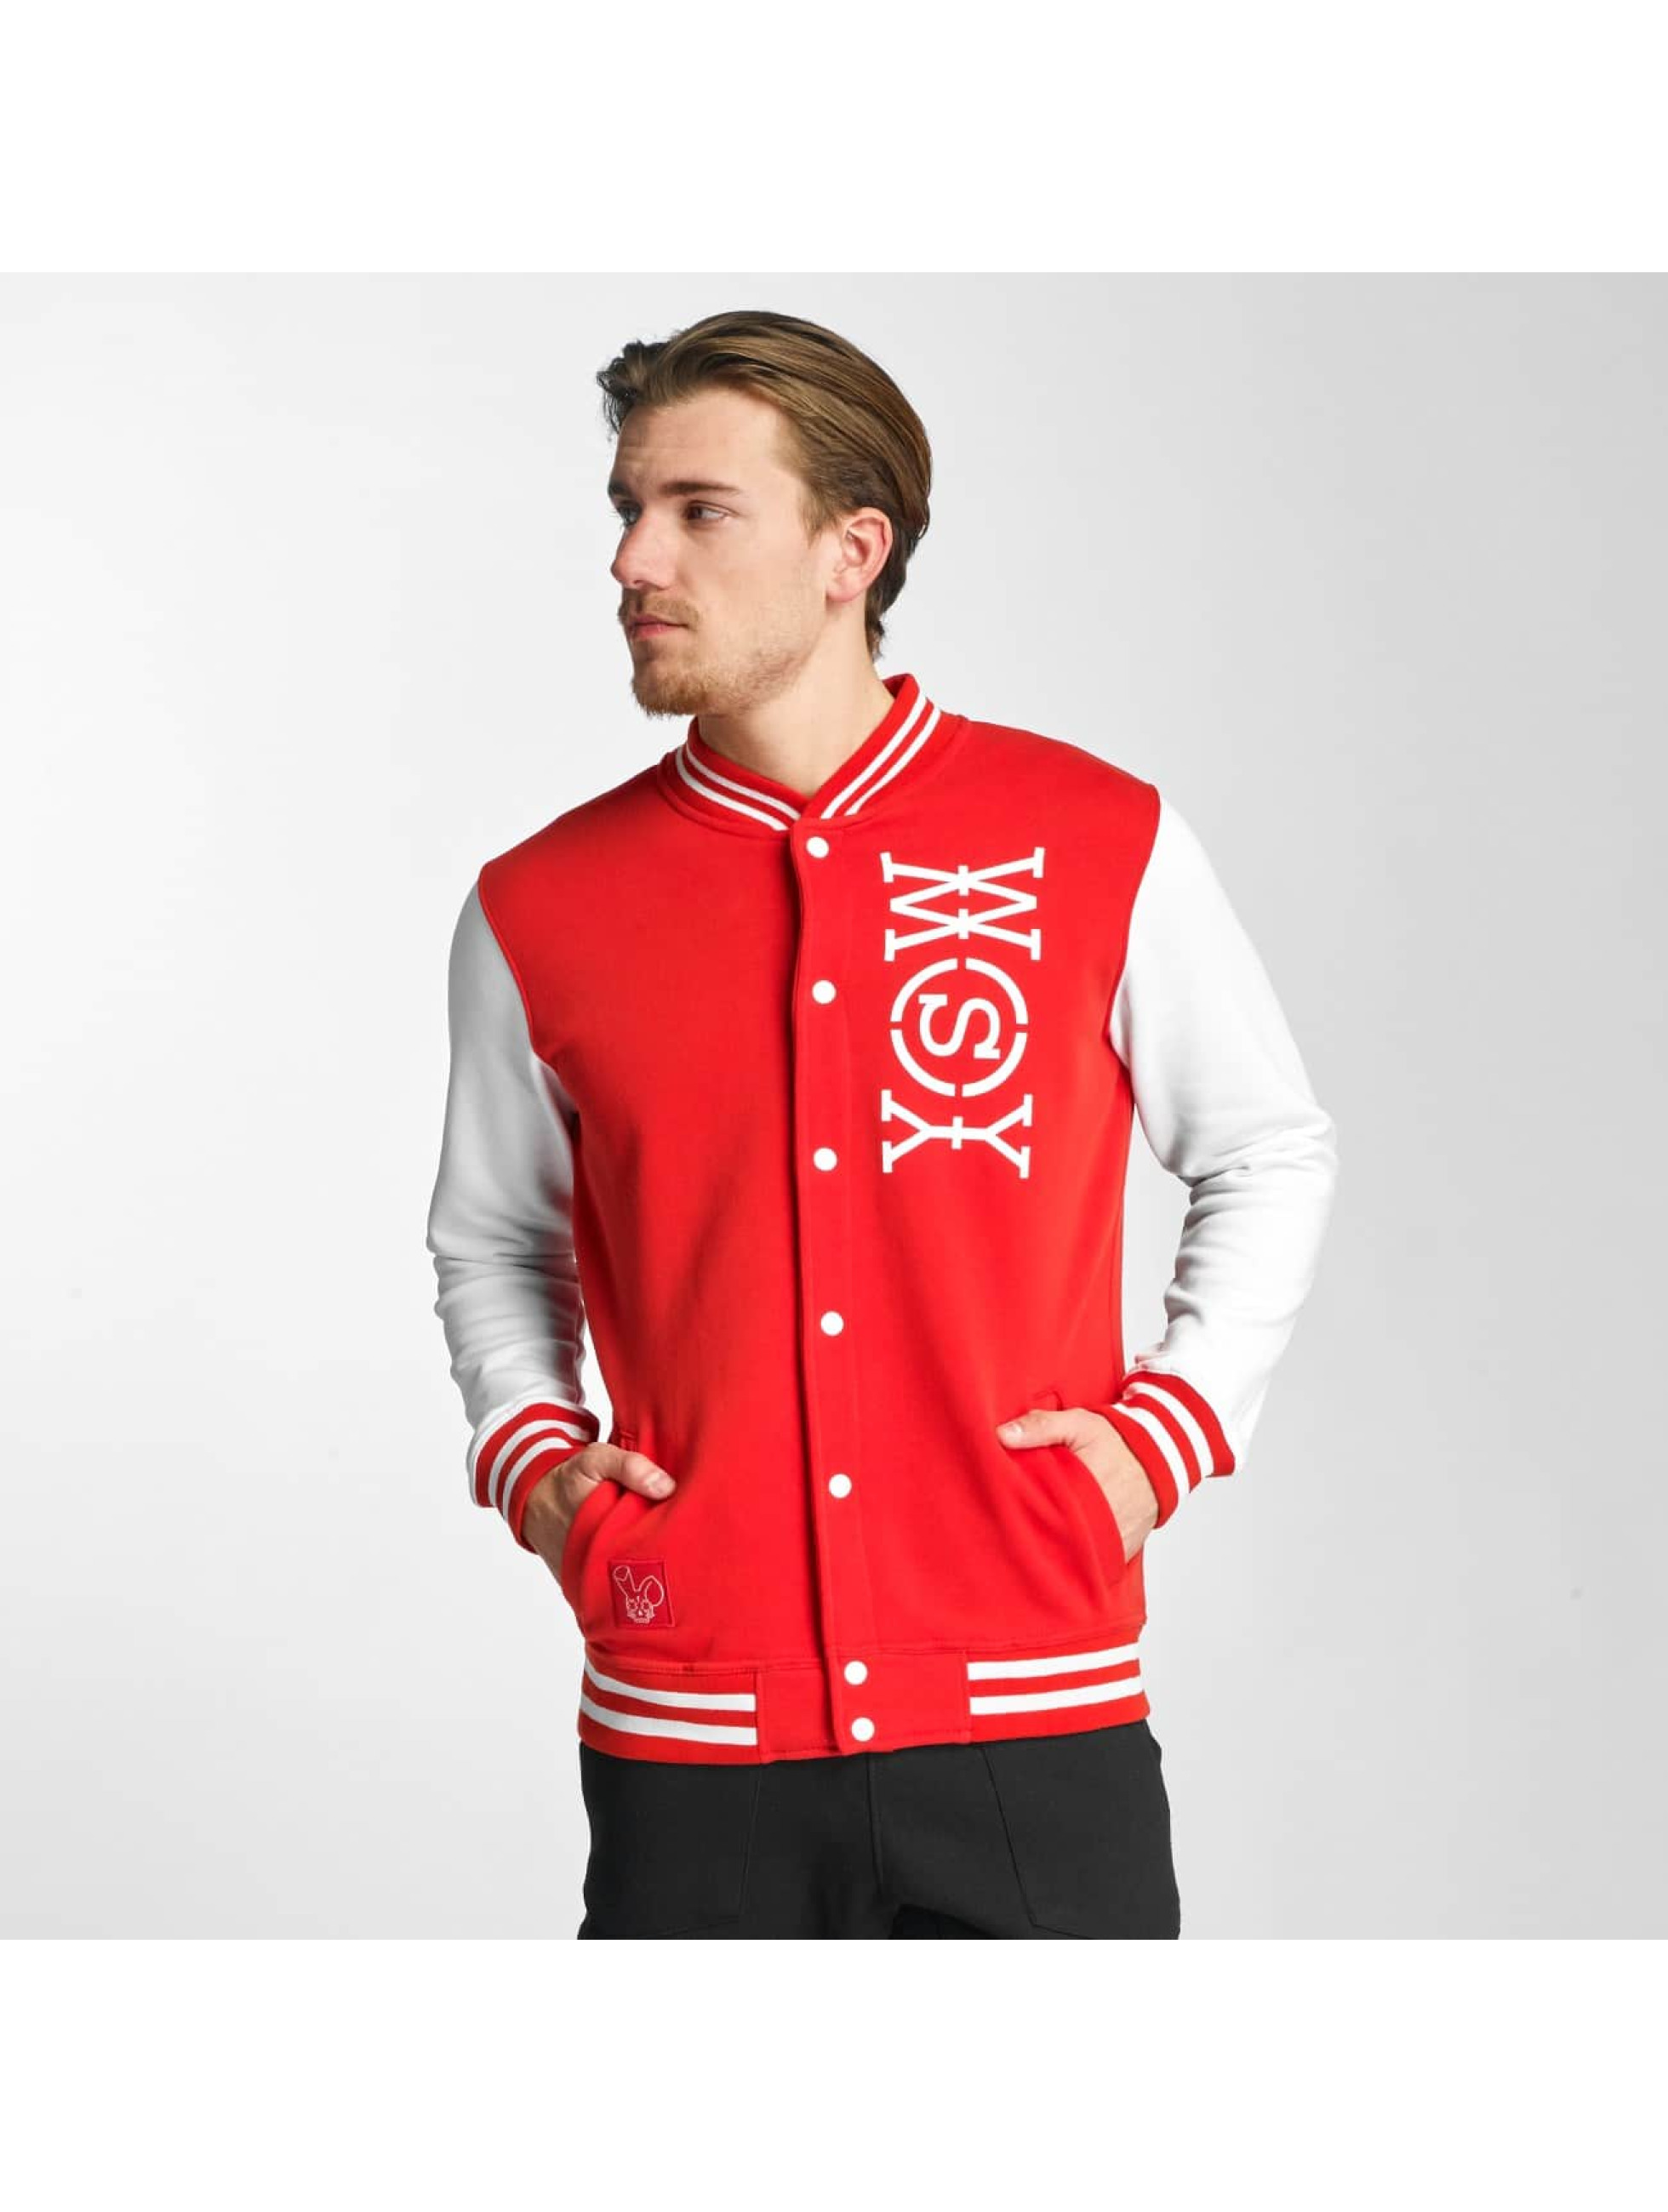 Who Shot Ya? / College Jacket Alpha in red XL